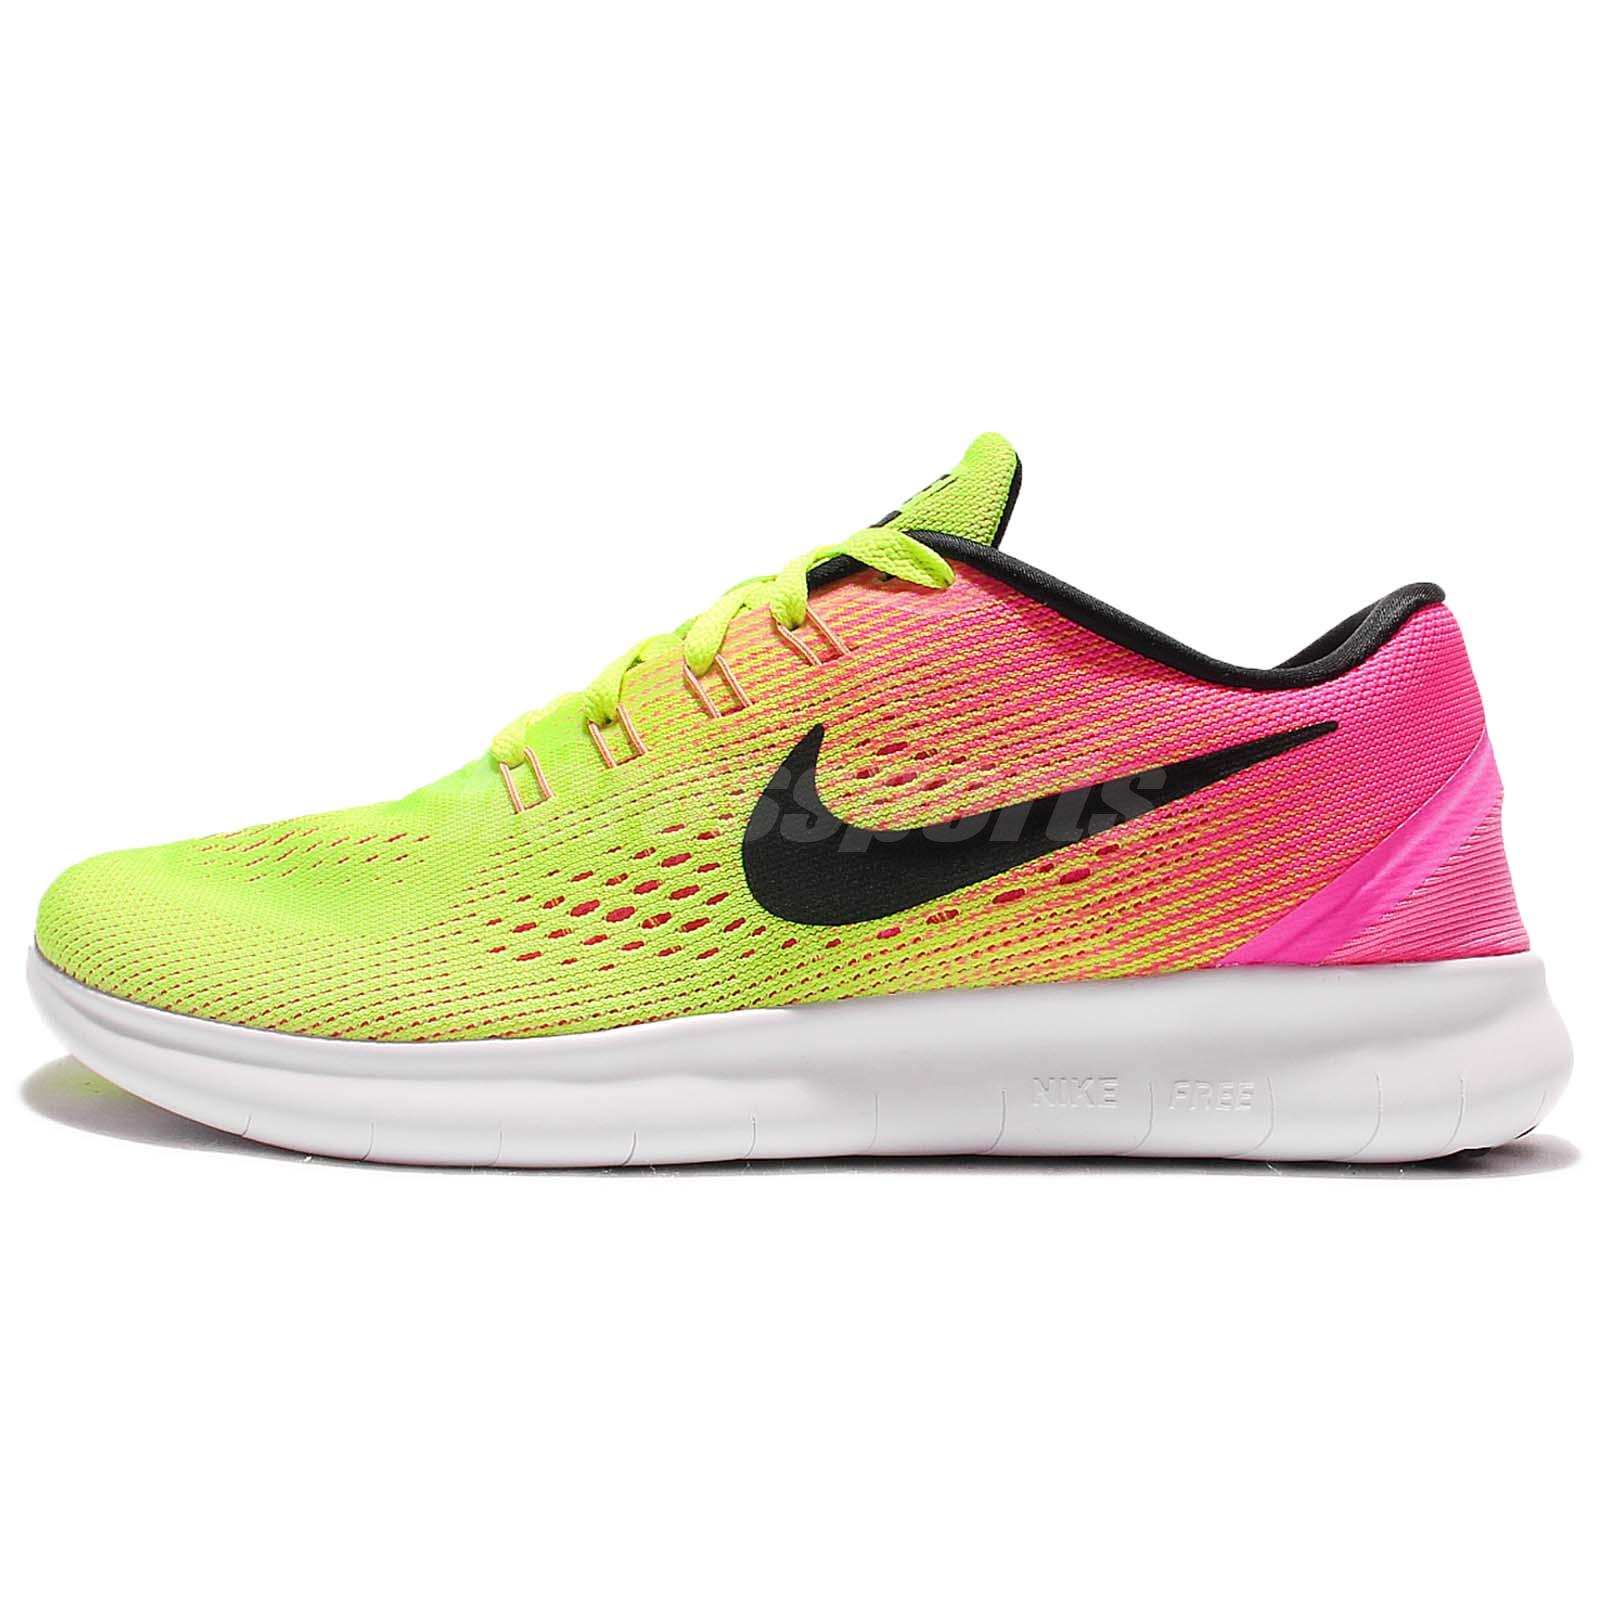 Nike Free RN OC Unlimited Rio Olympics Multi-Color Mens Running Shoes .